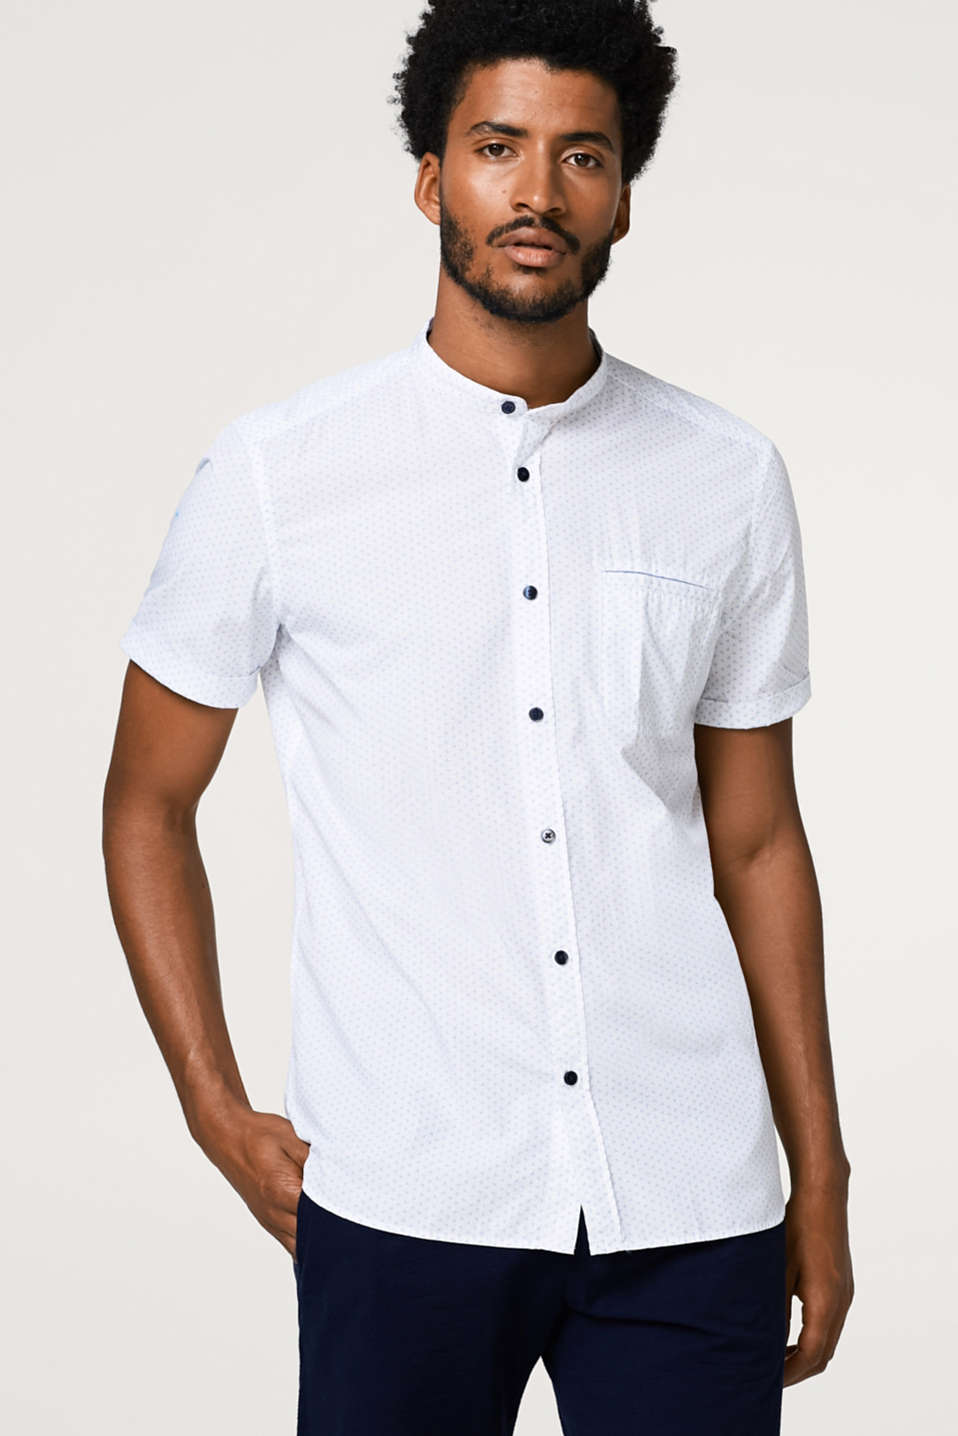 Esprit - Short sleeve shirt with a fine all-over print